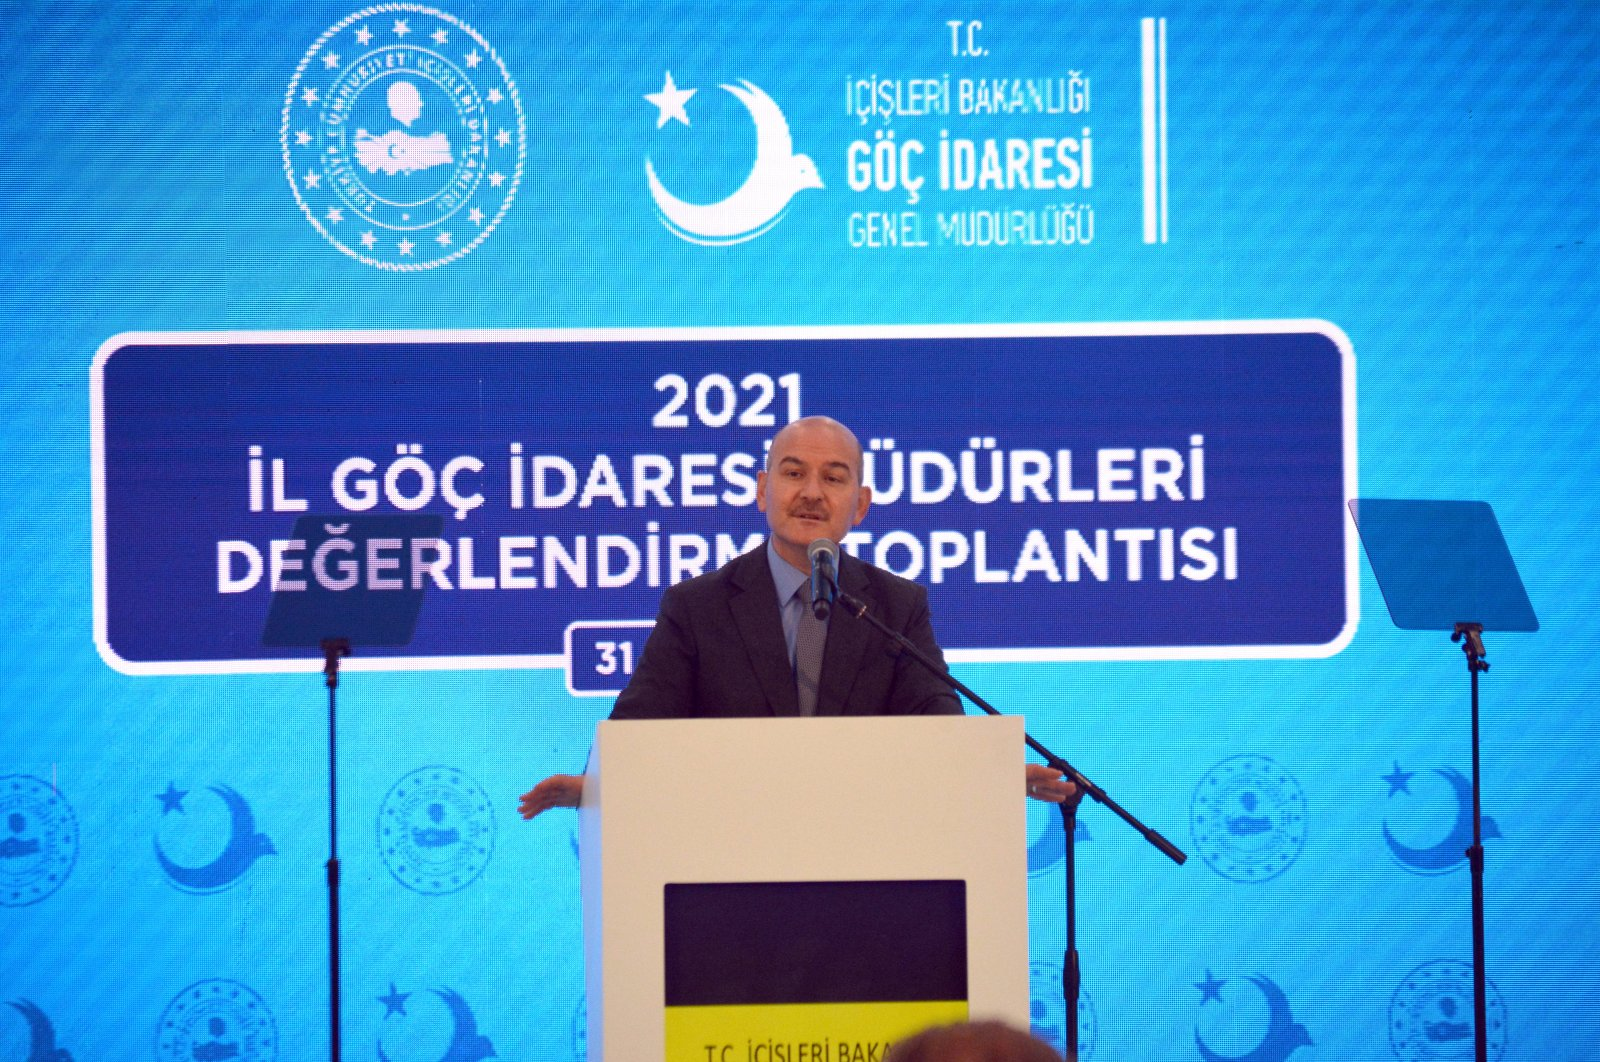 Interior Minister Süleyman Soylu speaks at a meeting on migration in western Balıkesir province, Turkey, March 31, 2021. (AA Photo)